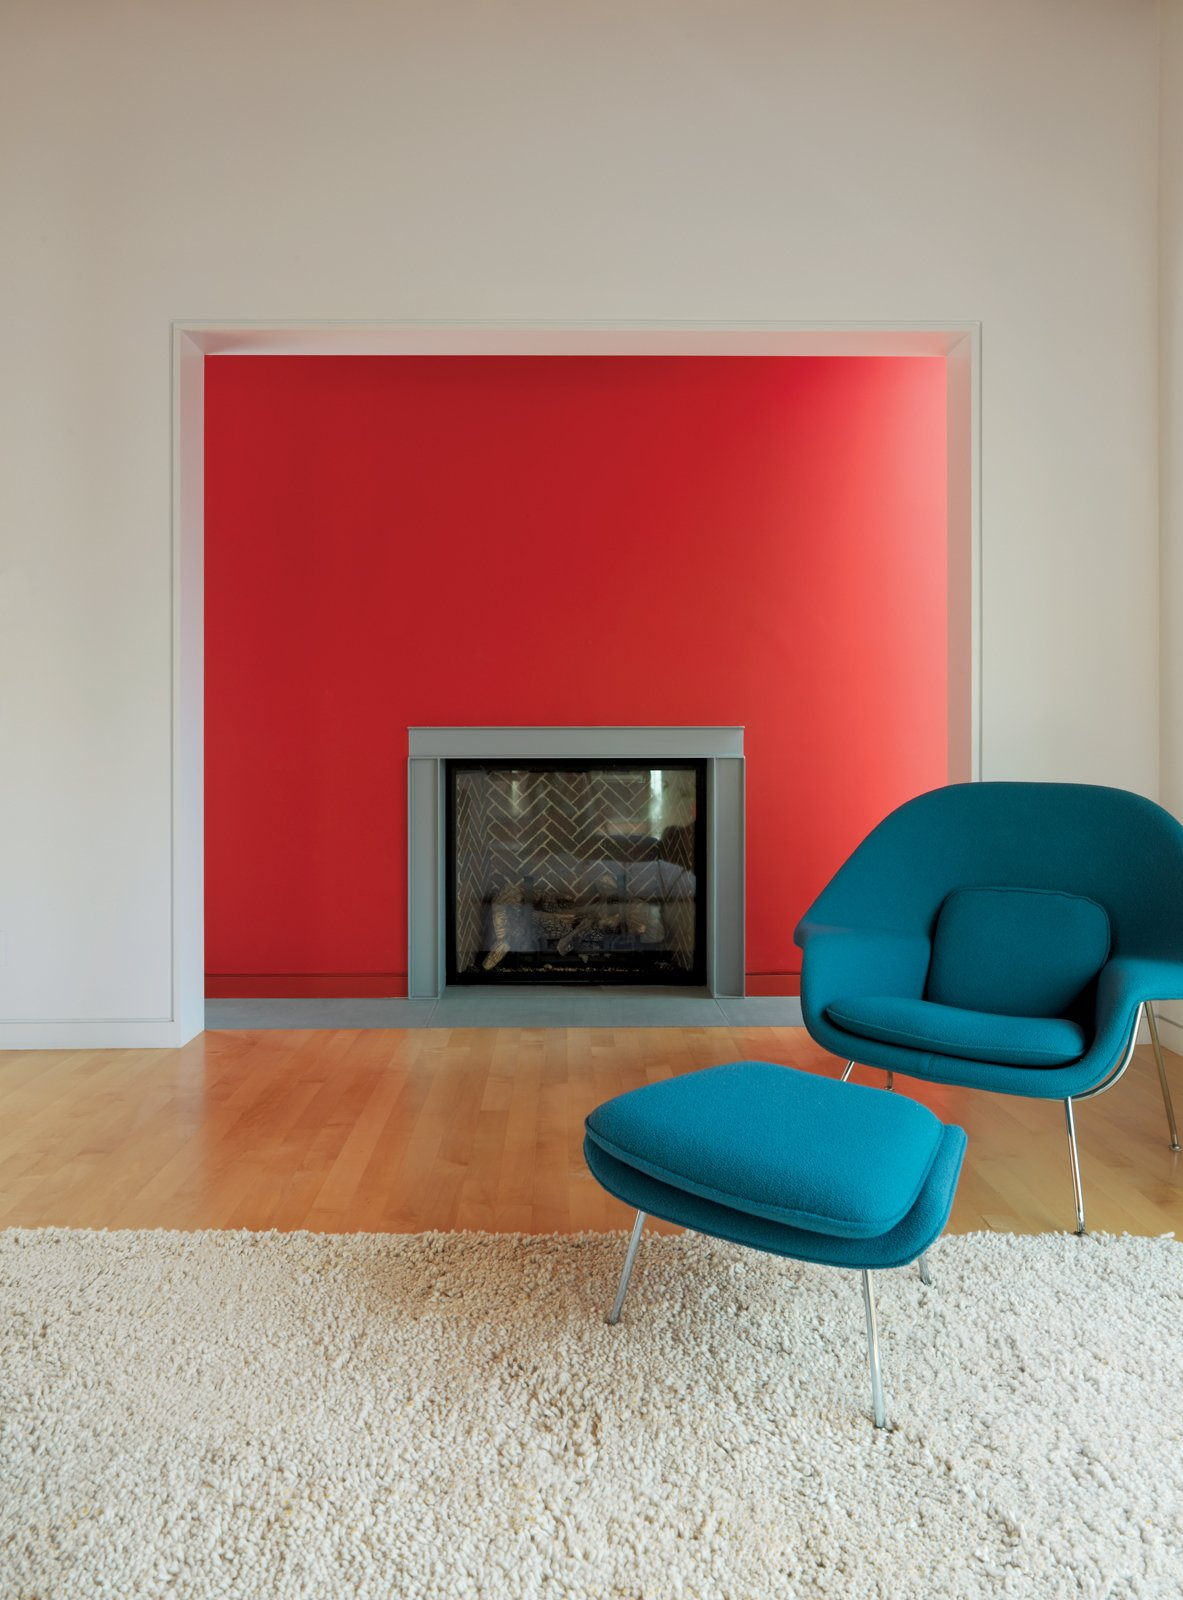 In the living room, Fashandi enjoys lounging in the Saarinen Womb chair by Knoll near the fireplace. The red wall is flanked by thin windows, causing it to glow in the sunlight.  Photo 9 of 10 in Design Classic: Eero Saarinen's Womb Chair from Family Matters